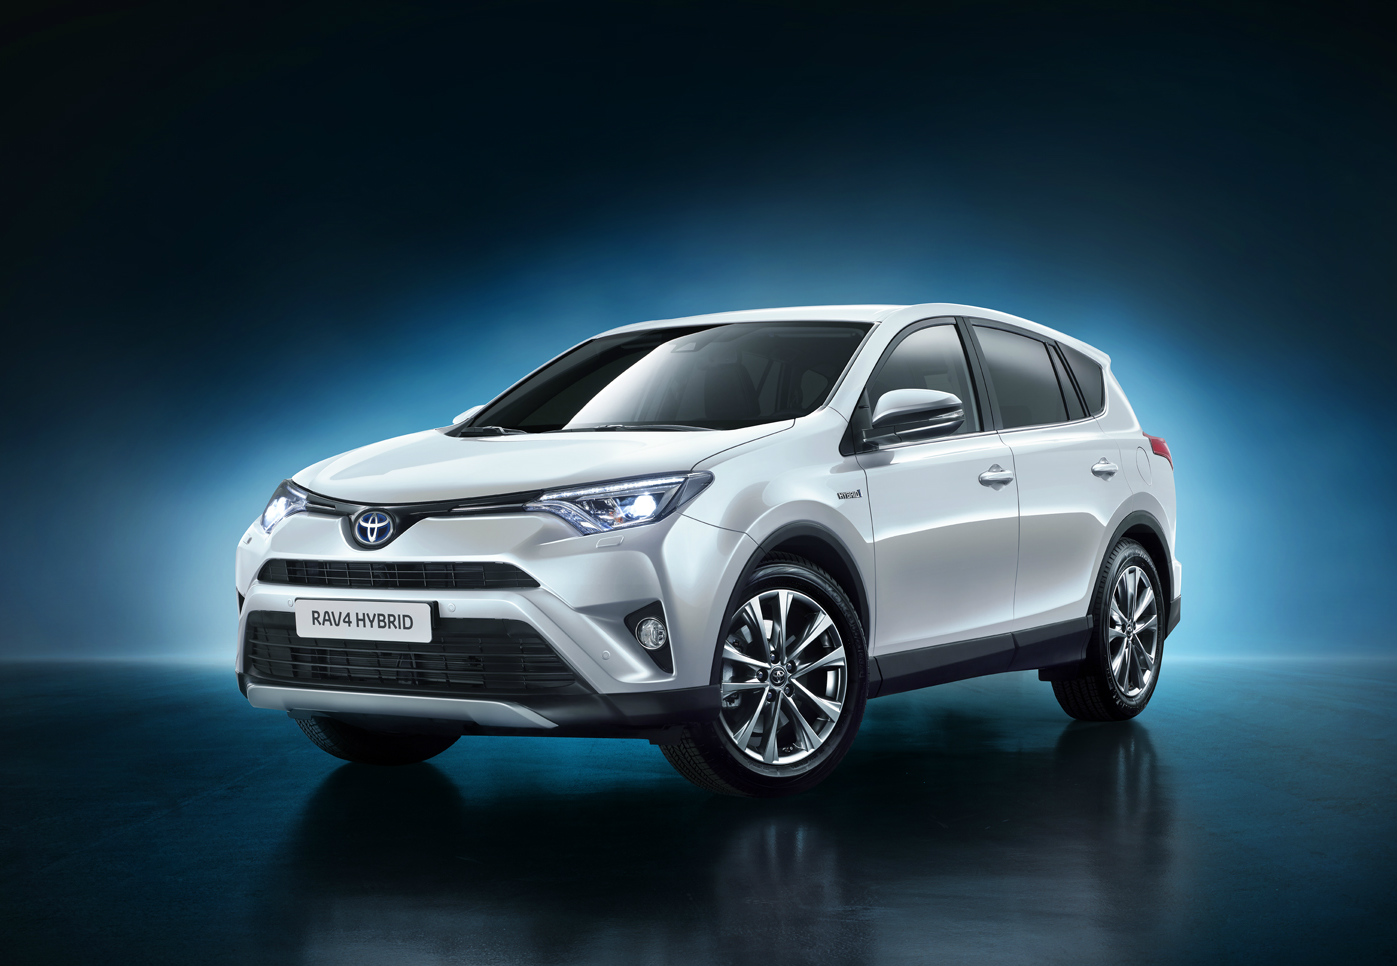 Toyota RAV4 is most expensive family SUV to service and repair